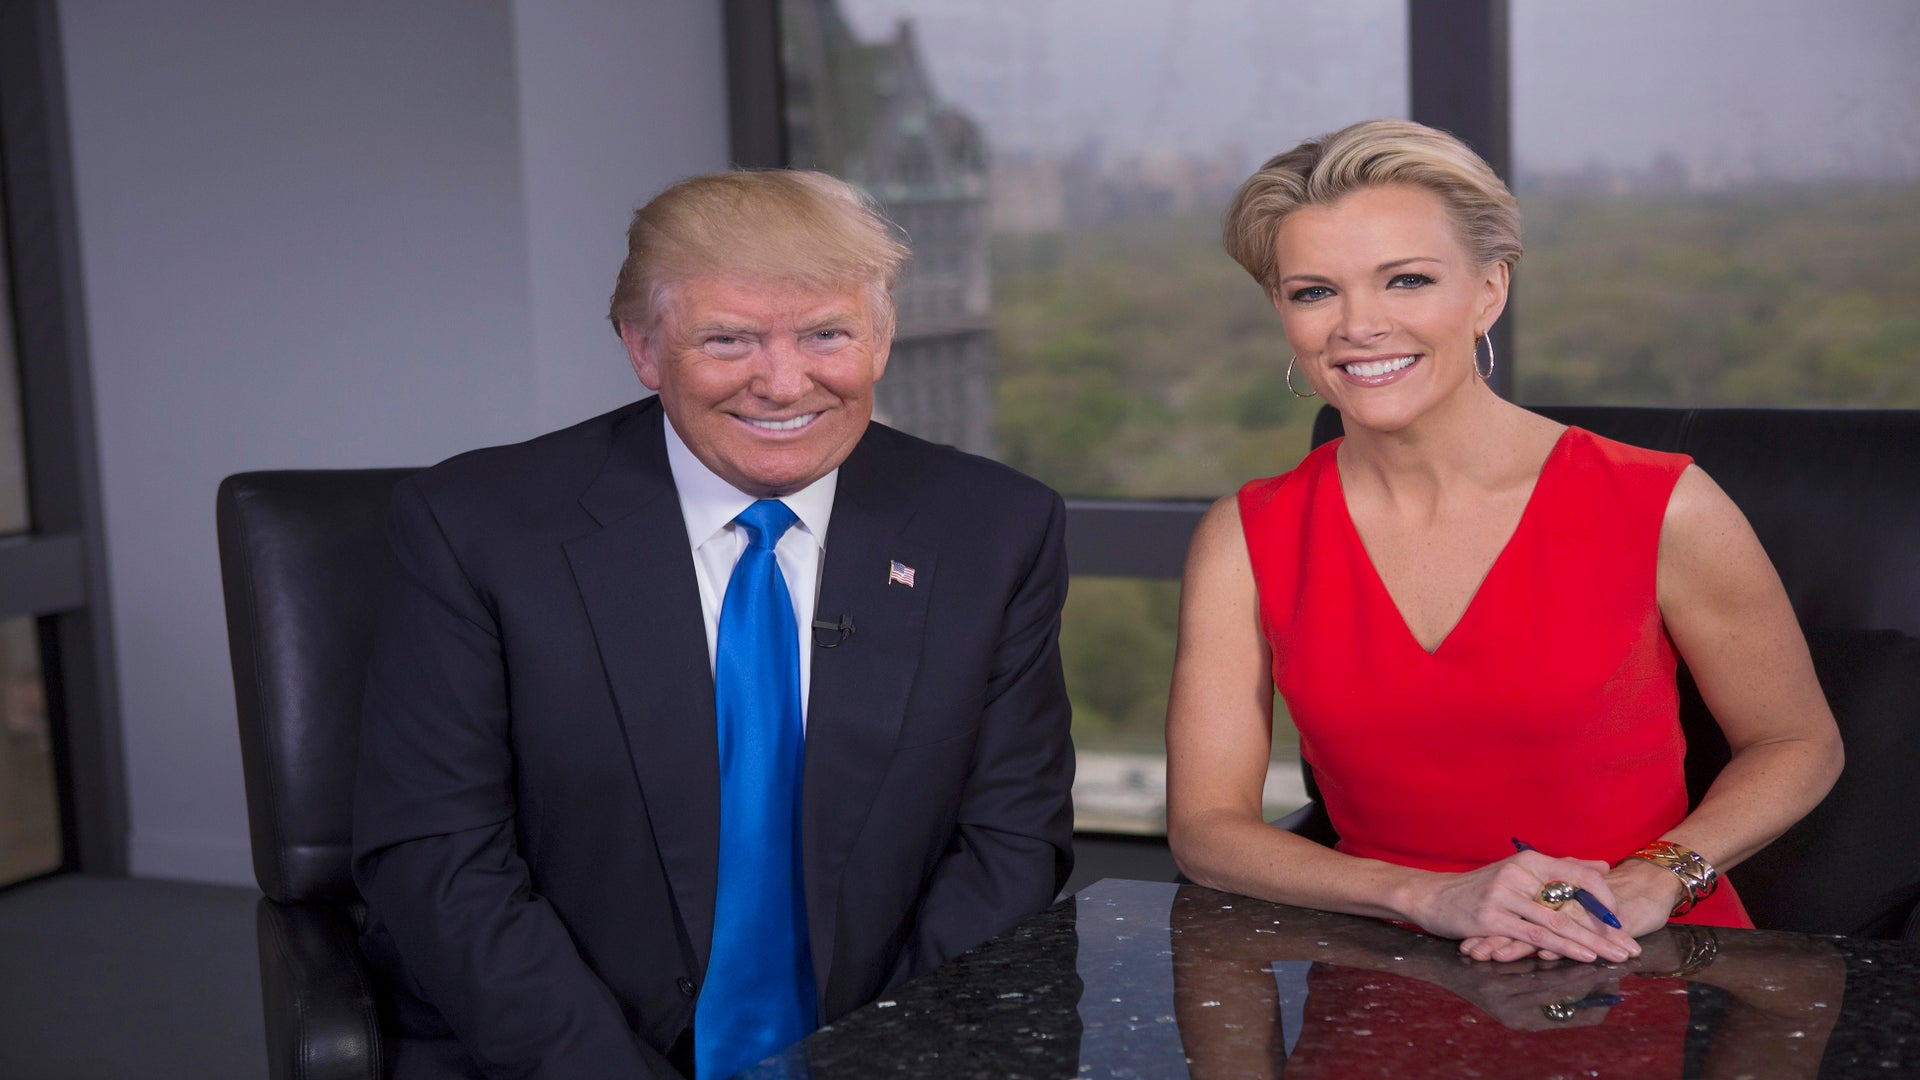 Accommodating Megyn Kelly At The Expense Of 2 Prominent Black Anchors Sure Seems LikeA Nod To Trump's America